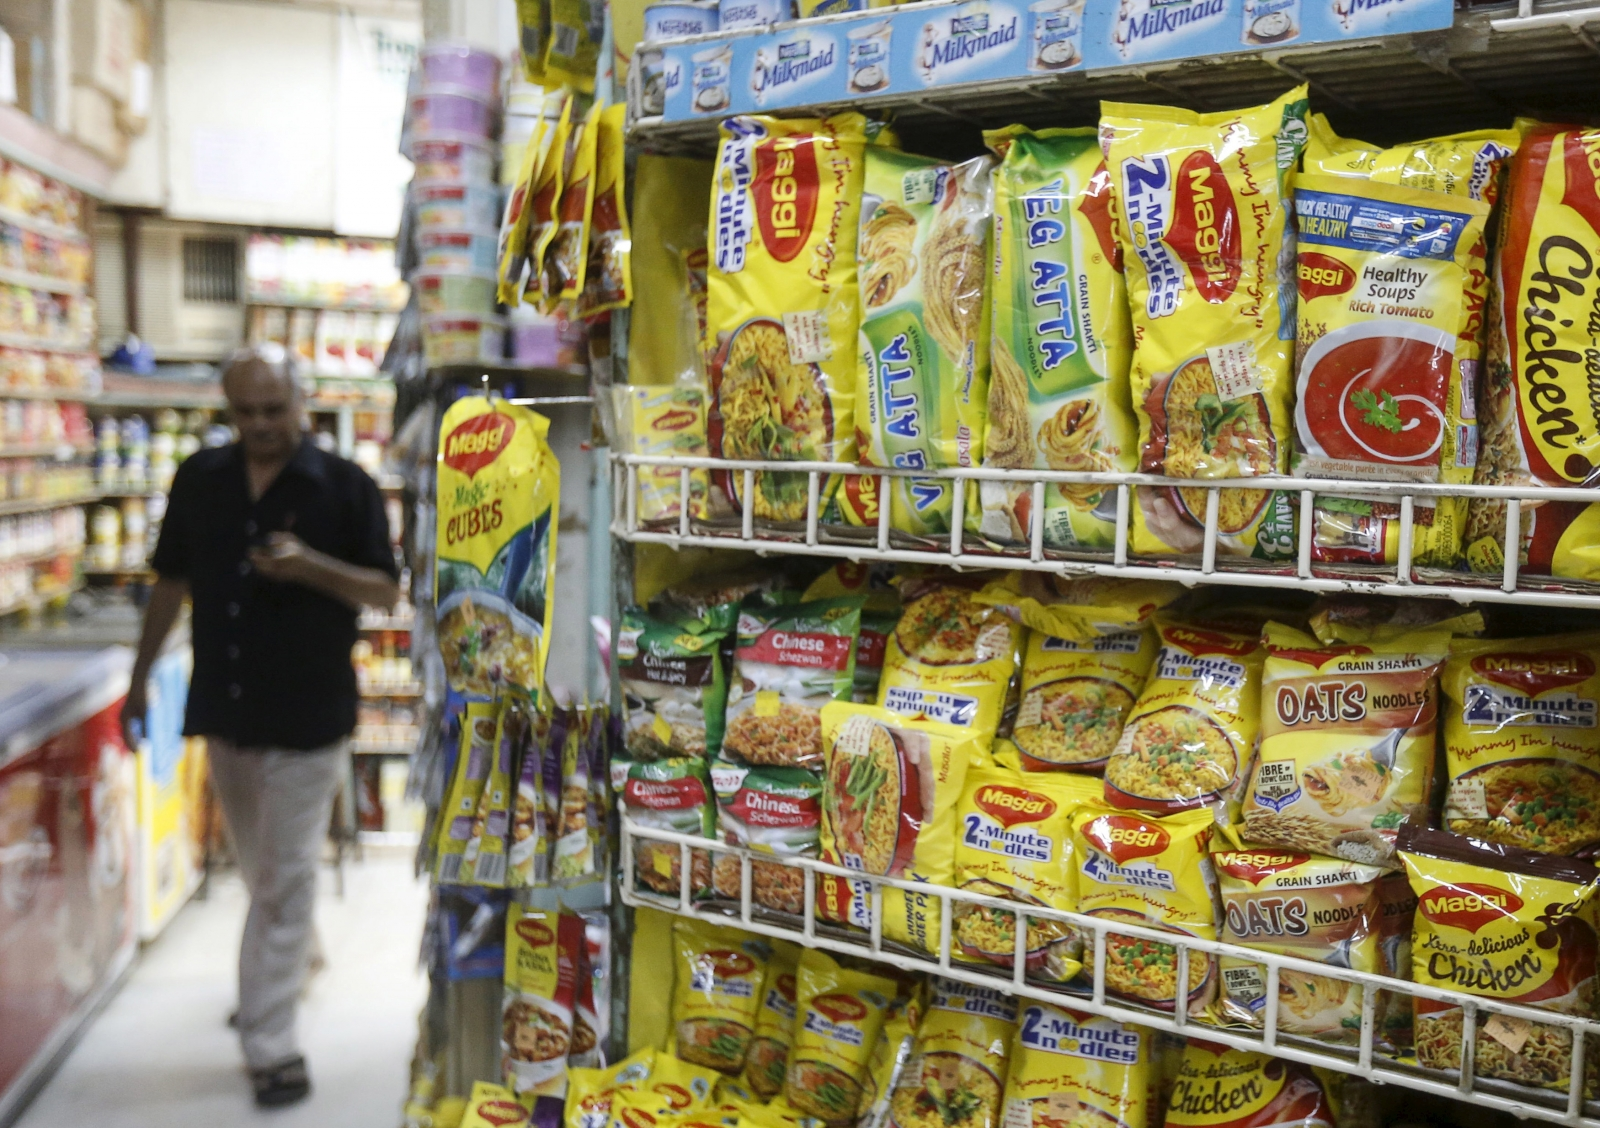 Nestle Maggi noodles: Indian court refuses to lift ban